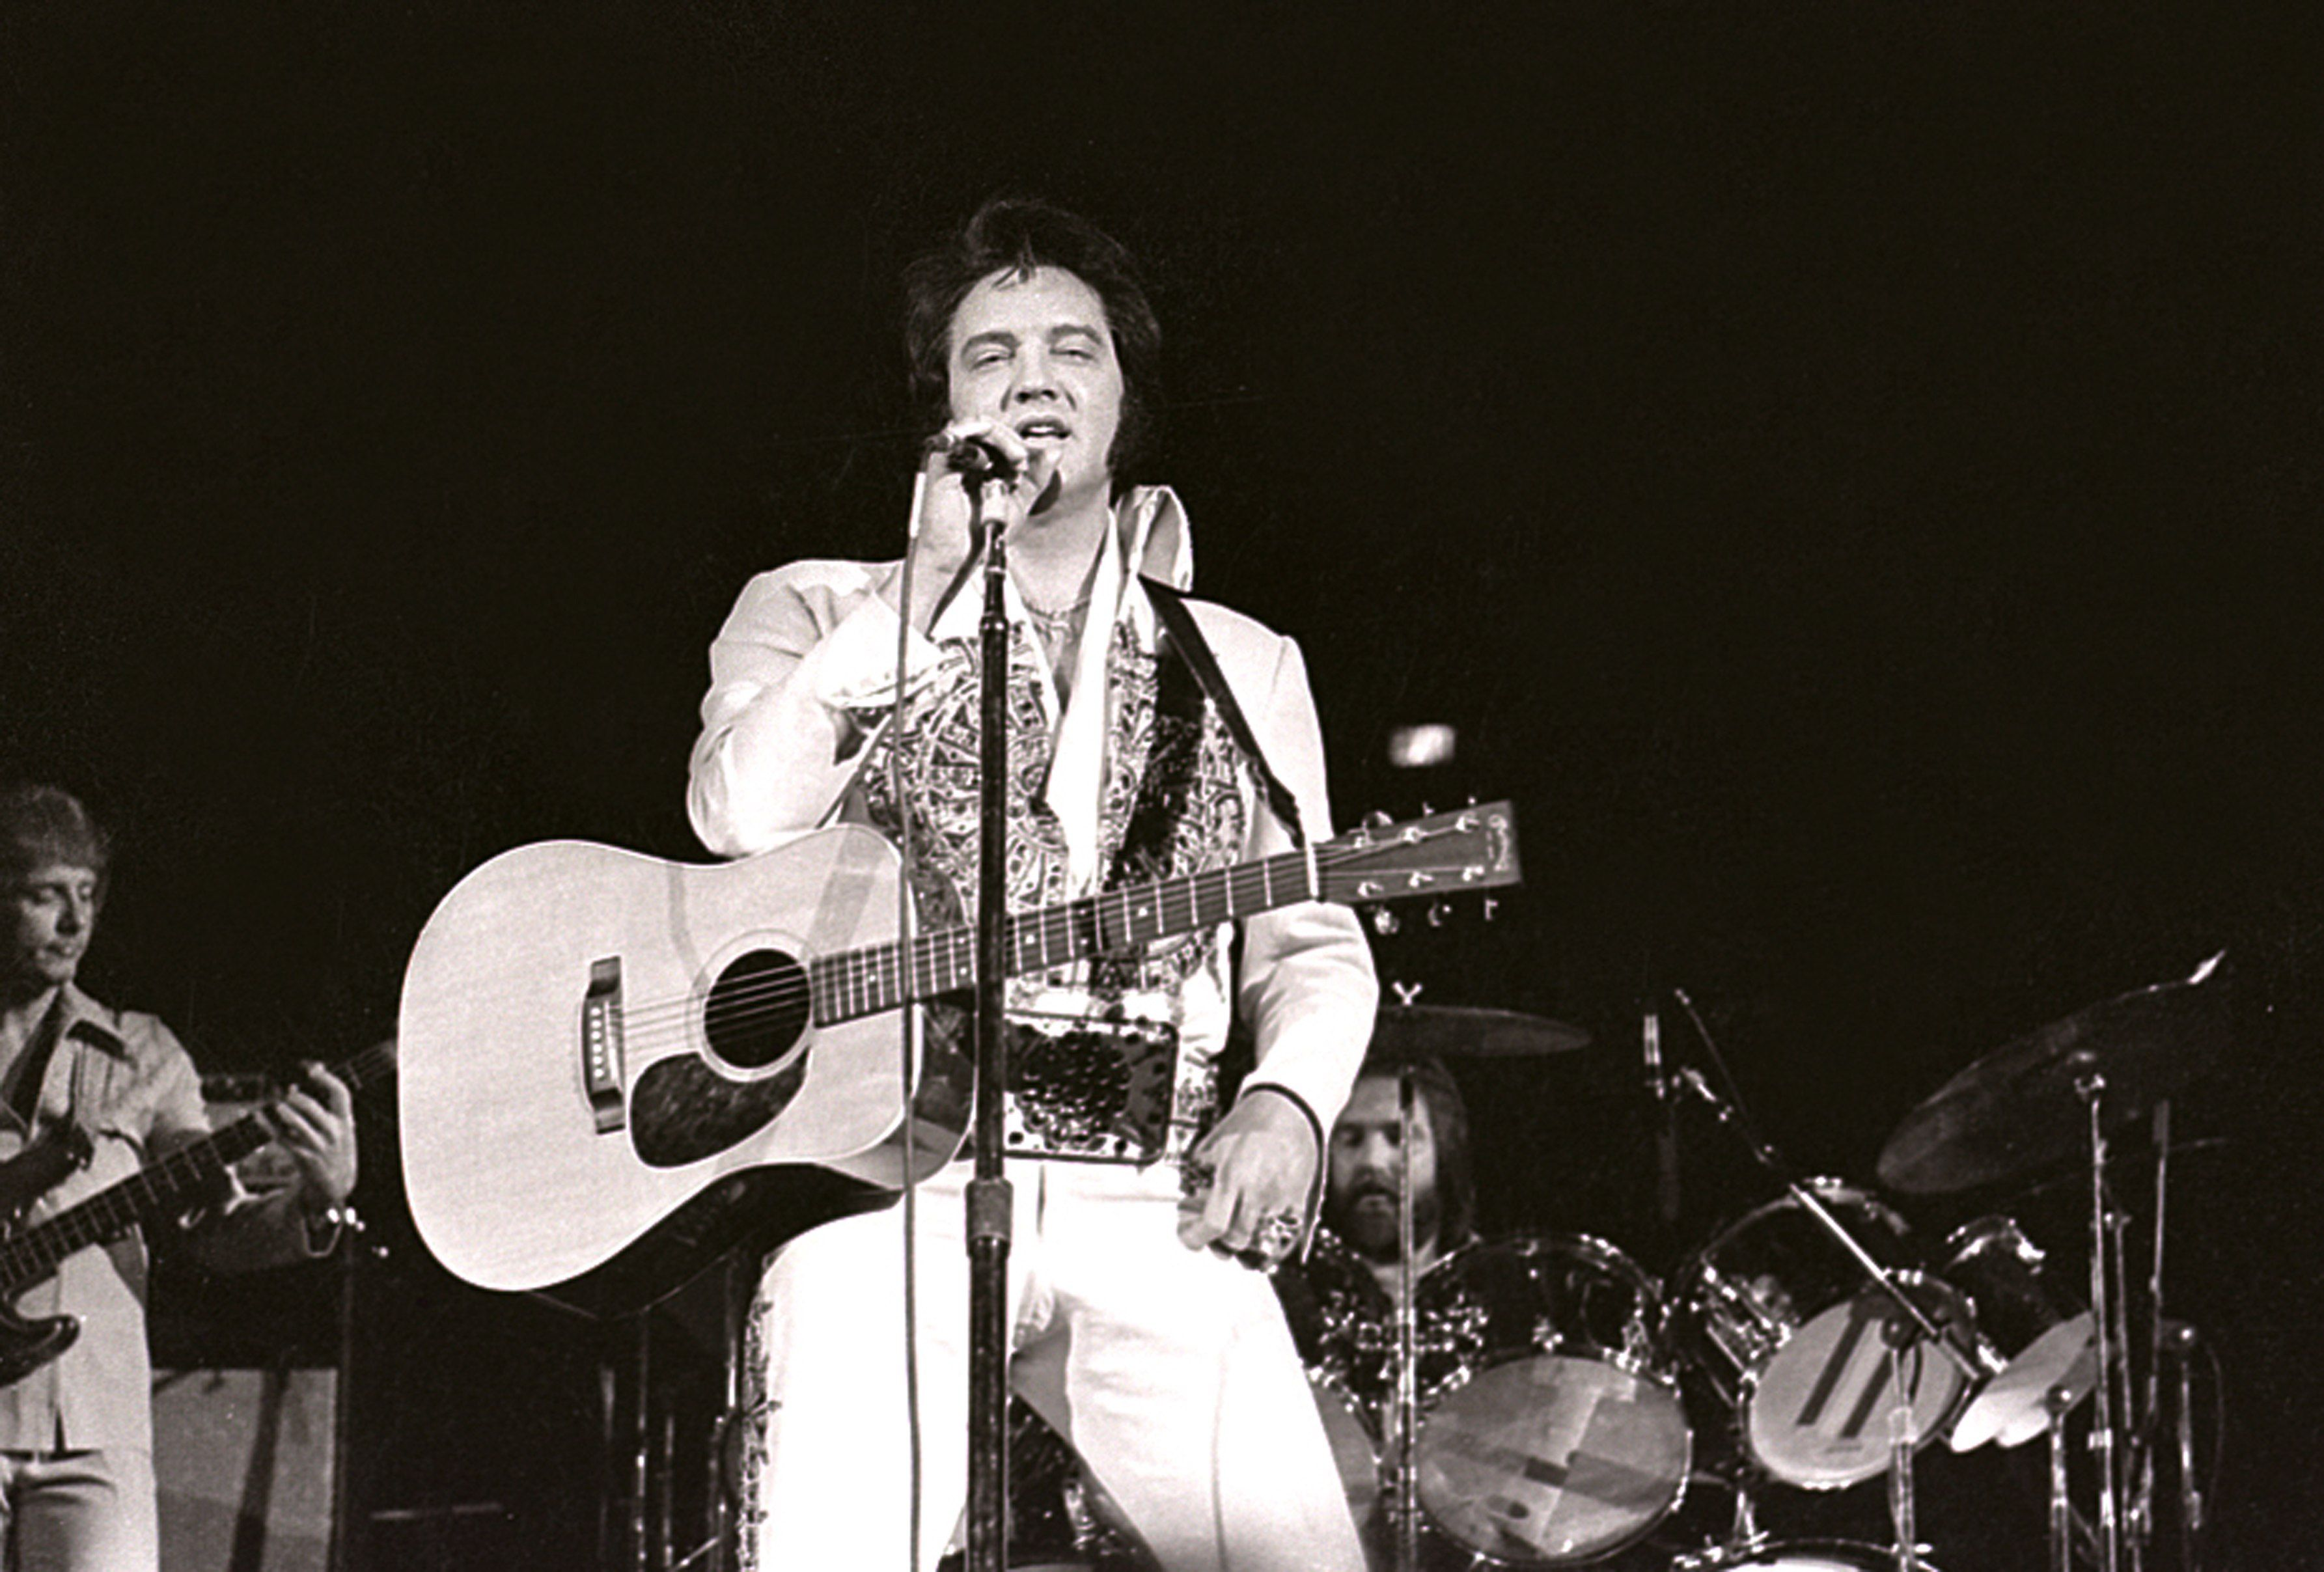 Elvis Presley at the Milwaukee Arena on April 27, l977 in Milwaukee, Wisconsin.   Source: Getty Images